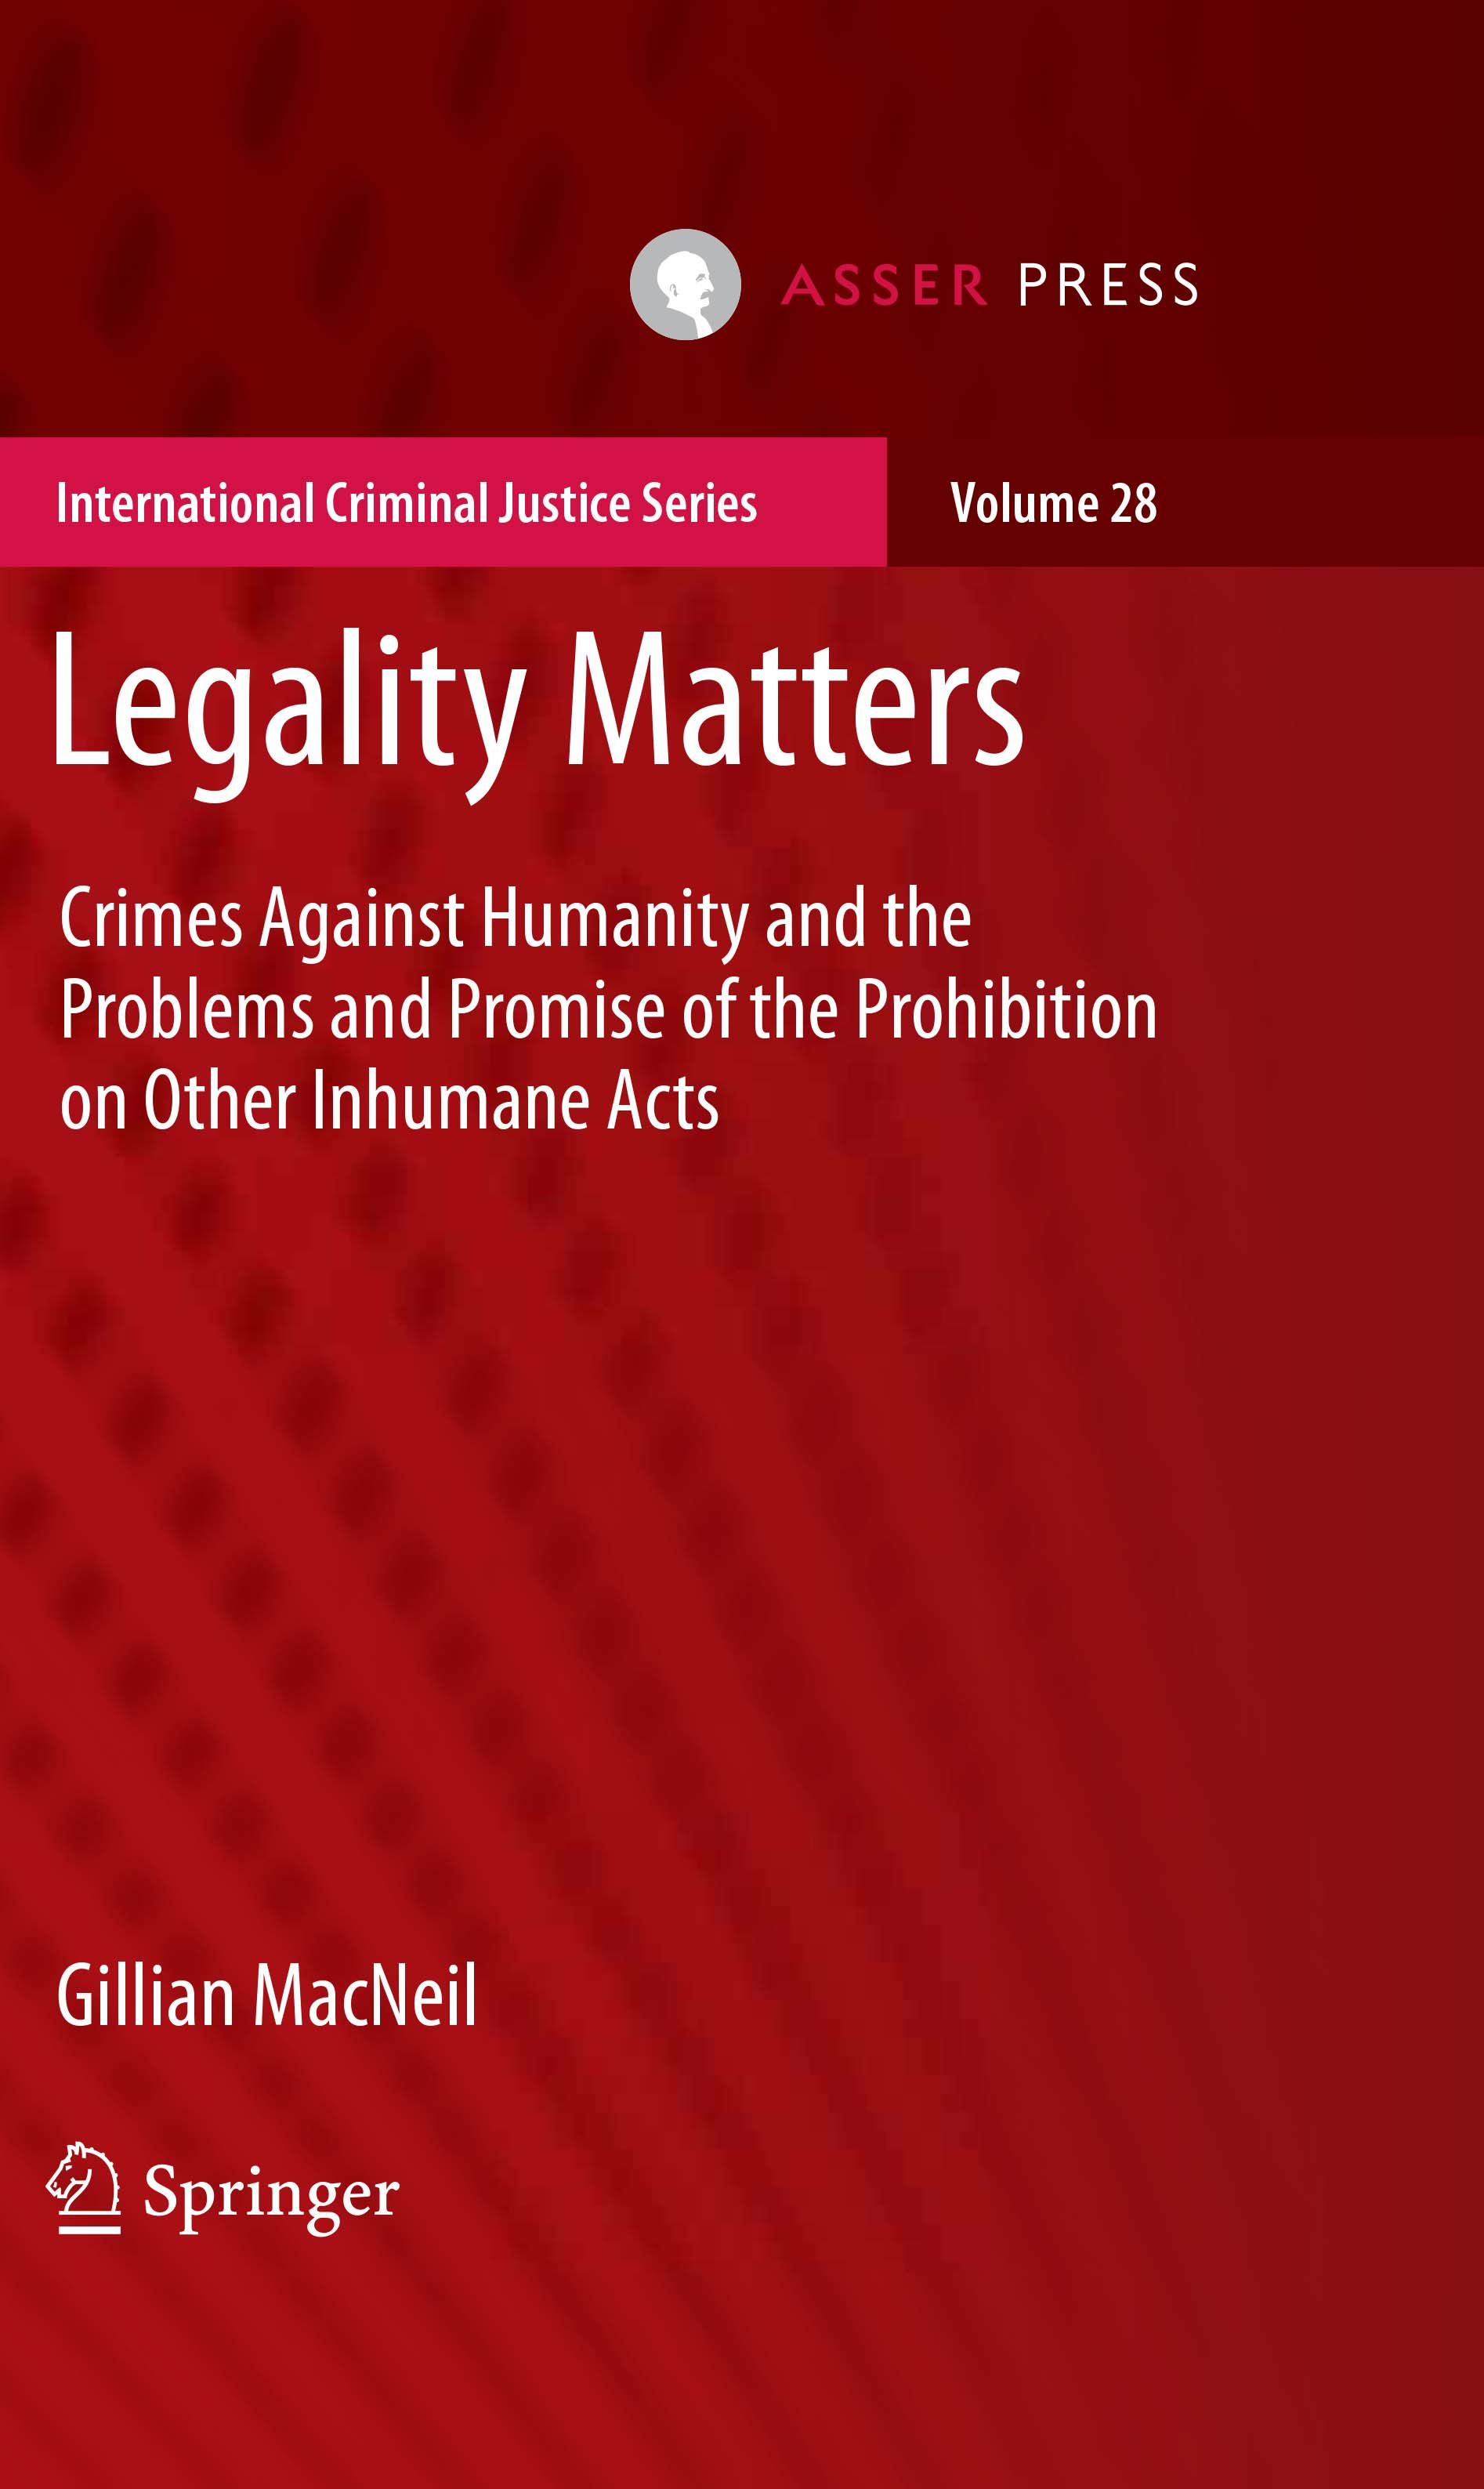 Legality Matters - Crimes Against Humanity and the Problems and Promise of the Prohibition on Other Inhumane Acts